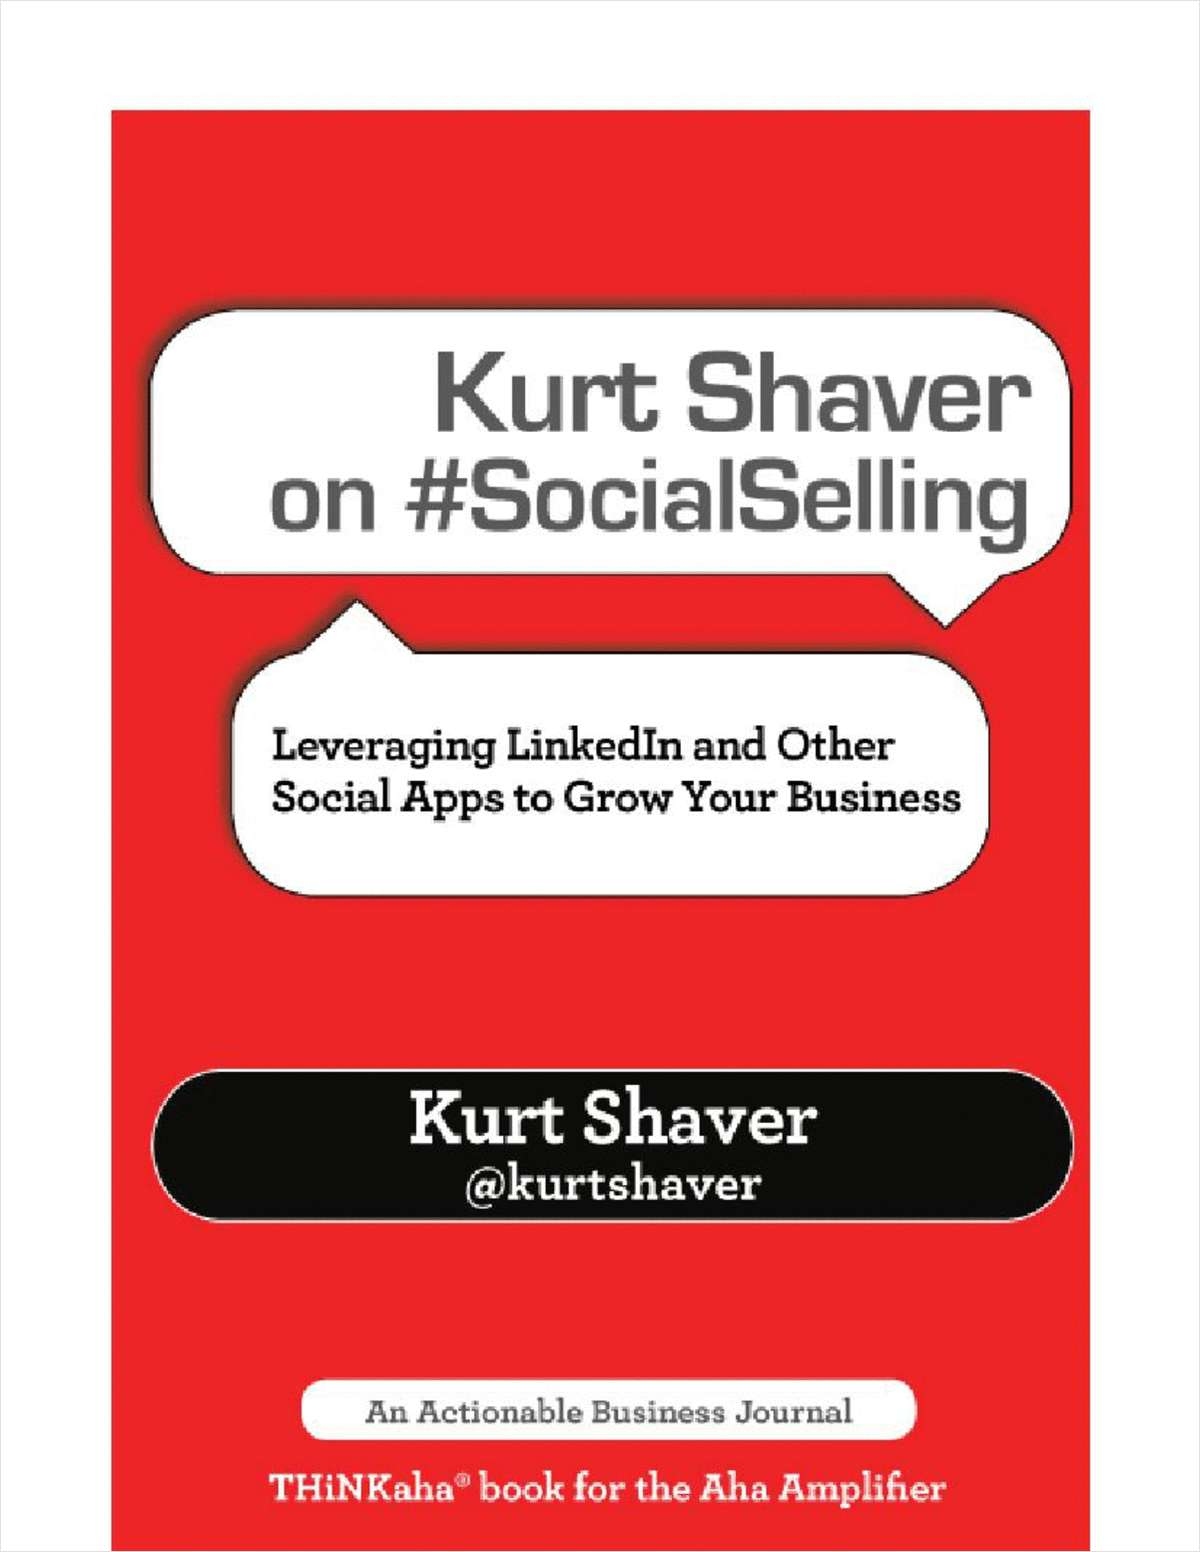 Kurt Shaver on #SocialSelling: Leveraging LinkedIn and Other Social Apps to Grow Your Business